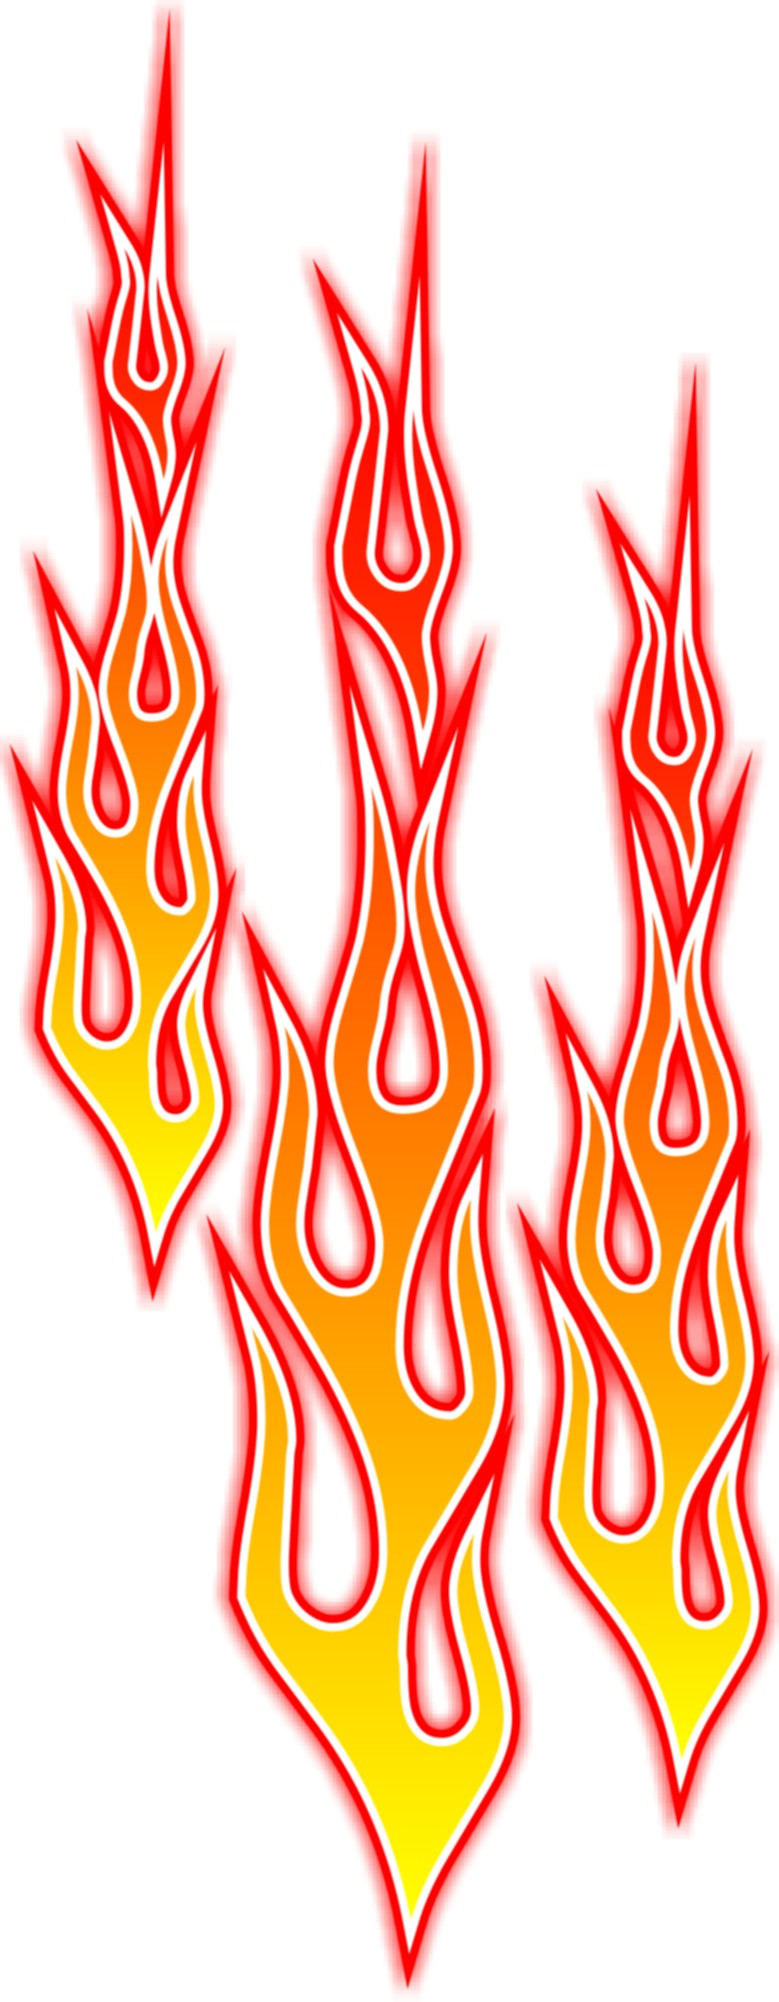 medium resolution of flames free flame clipart the cliparts